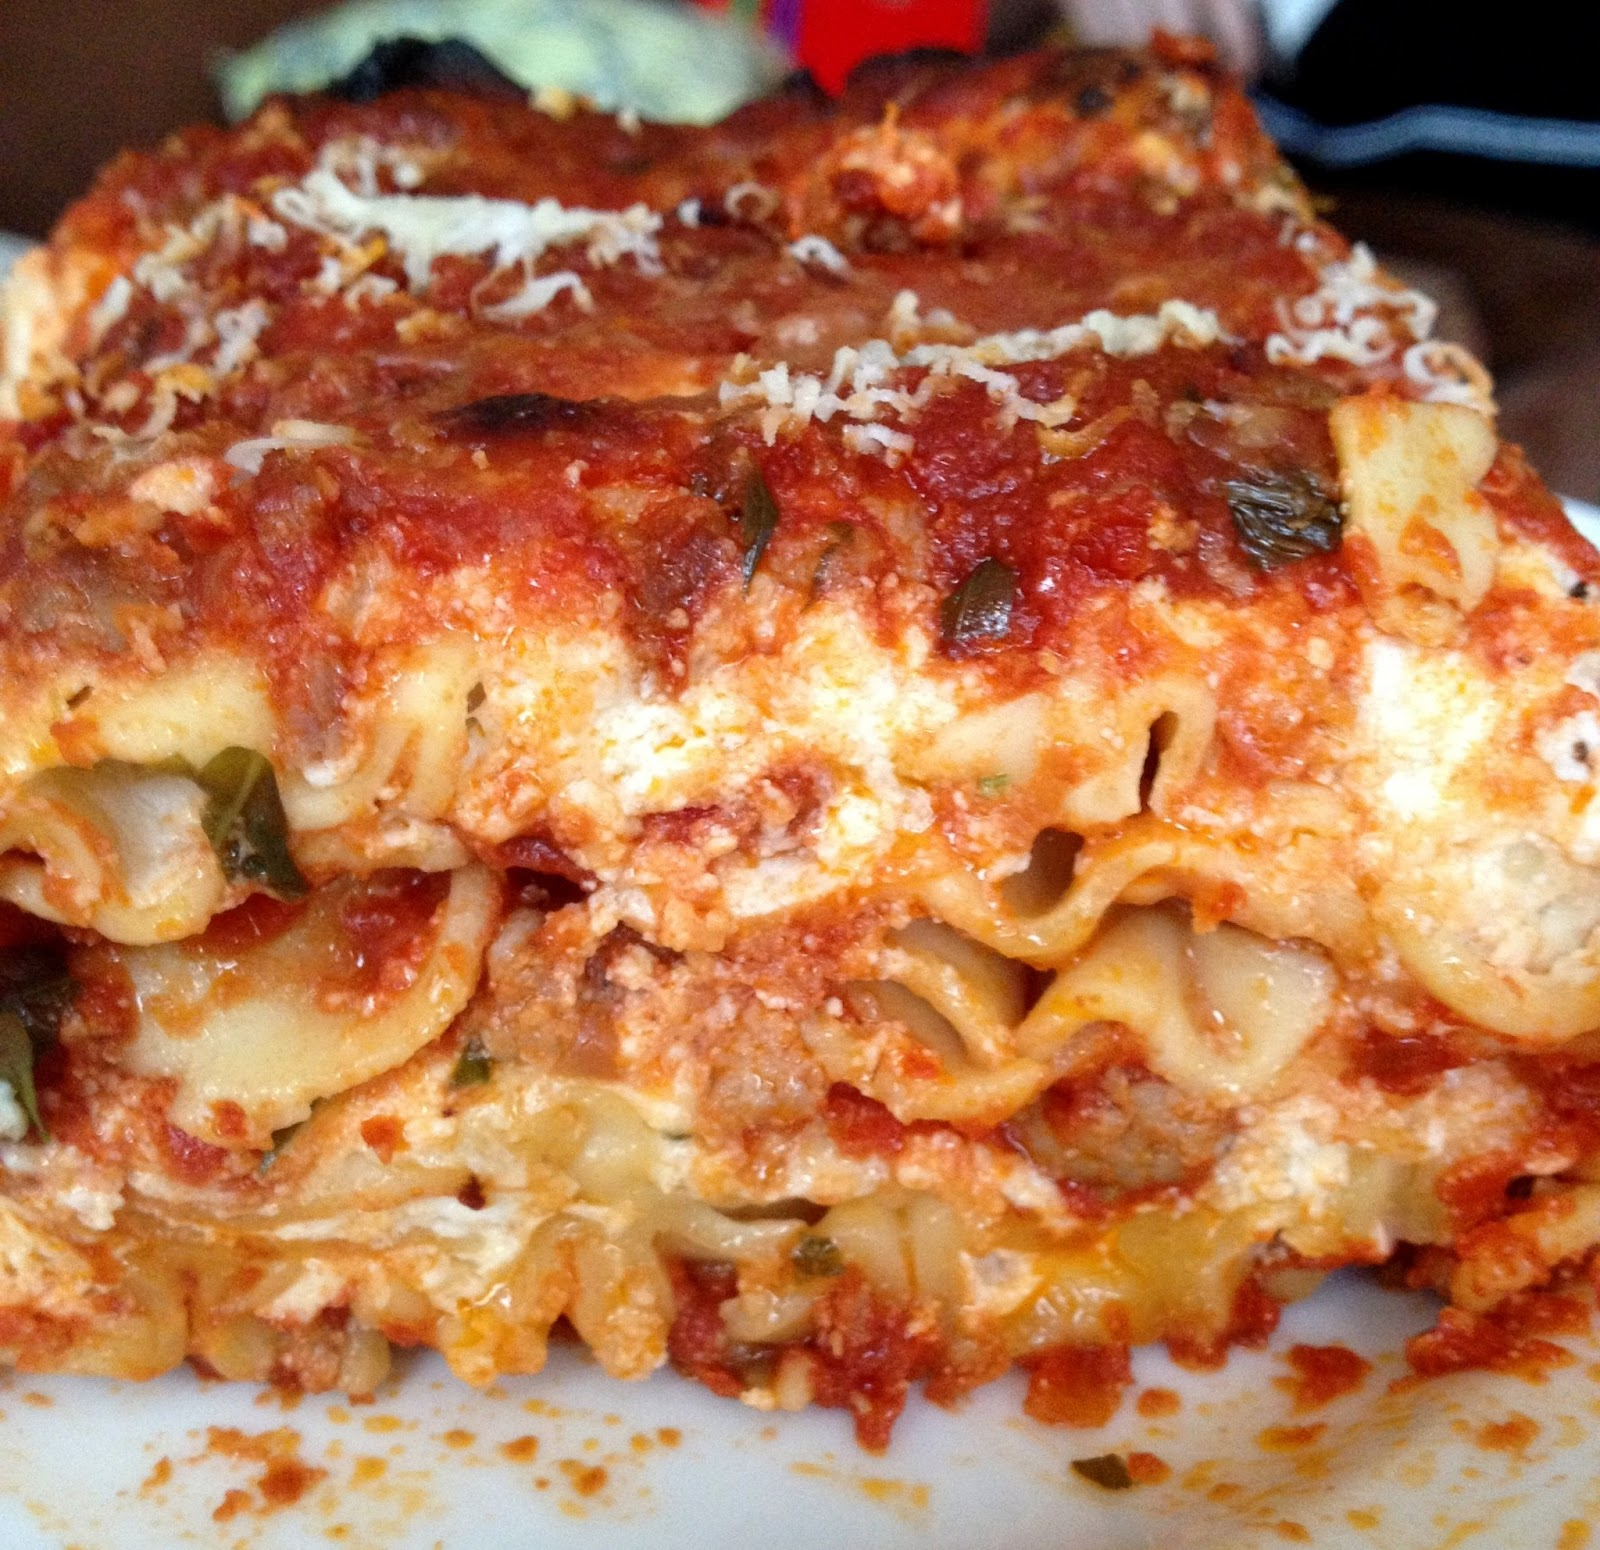 ... door baked goods: Dinner tonight: Ina Garten's turkey sausage lasagna